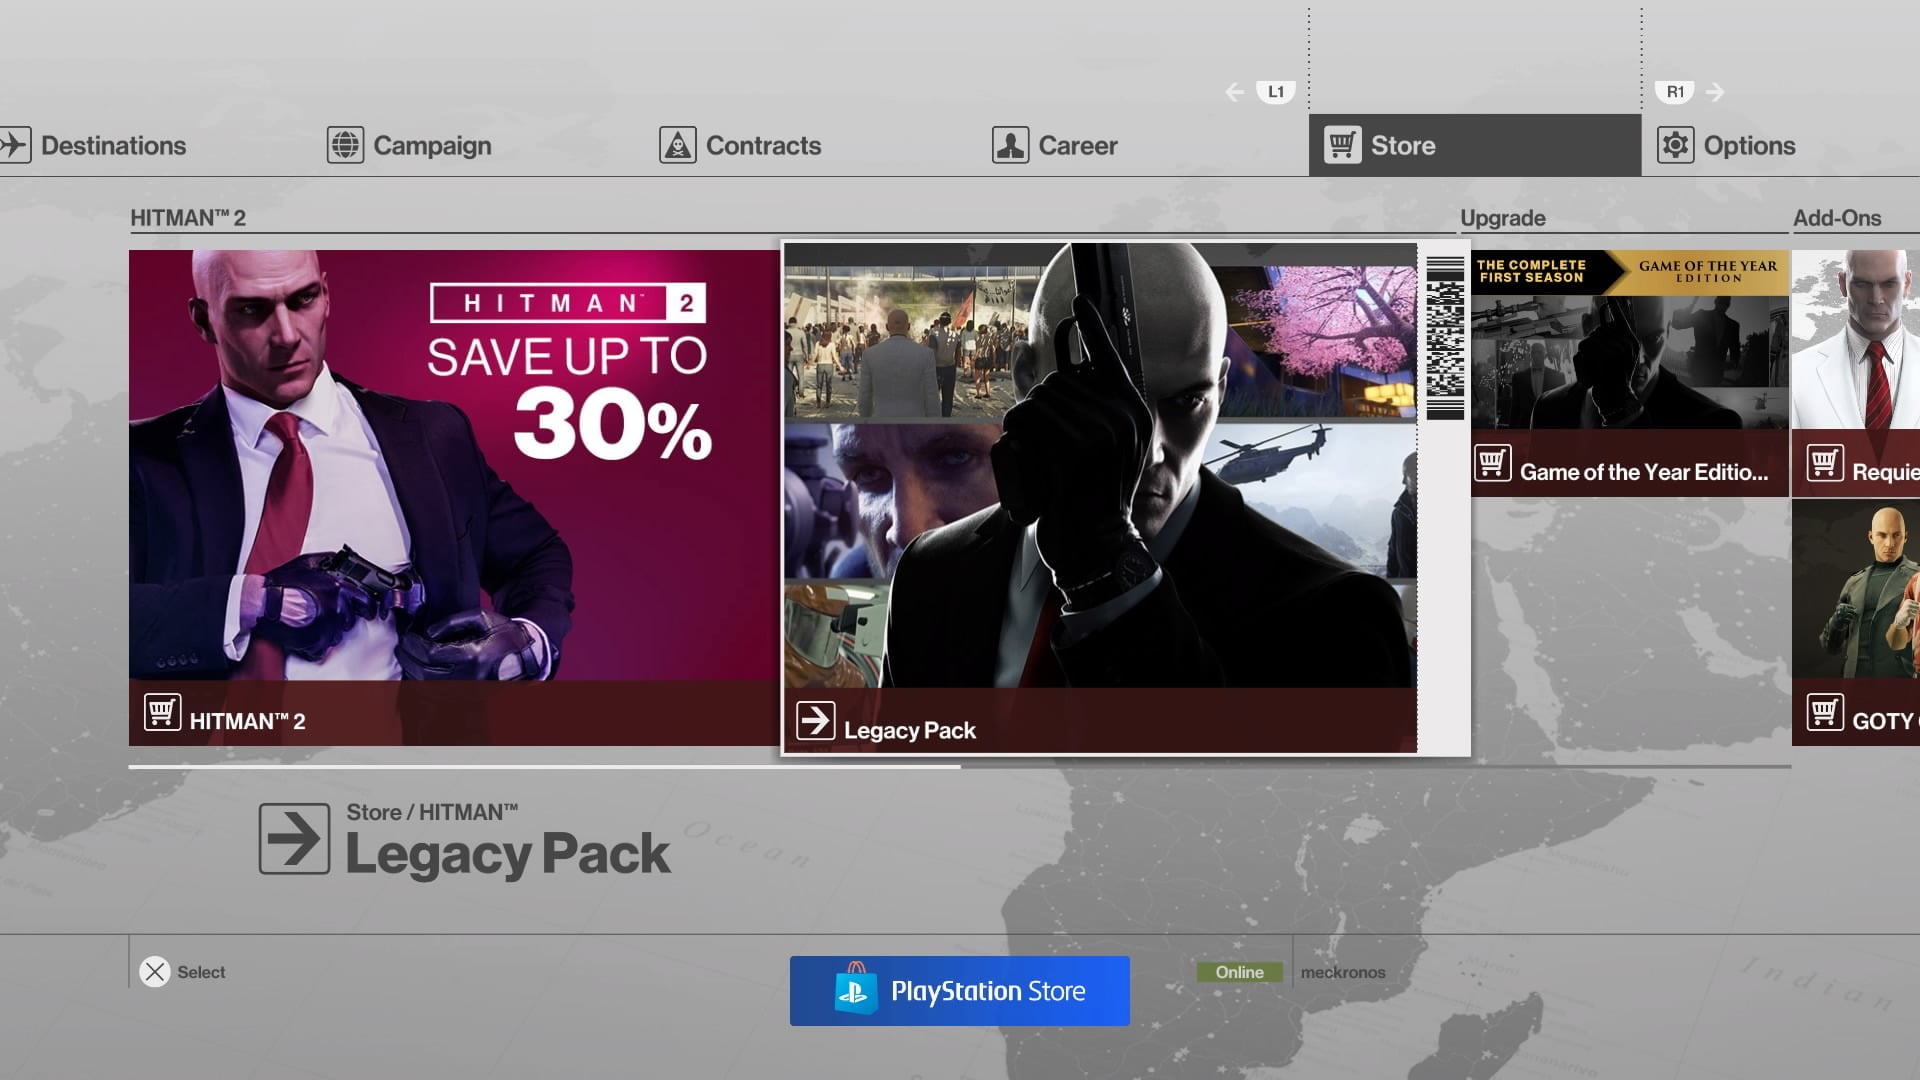 Psa Ps4 Players In Asia Can Now Redeem The Hitman Legacy Pack For